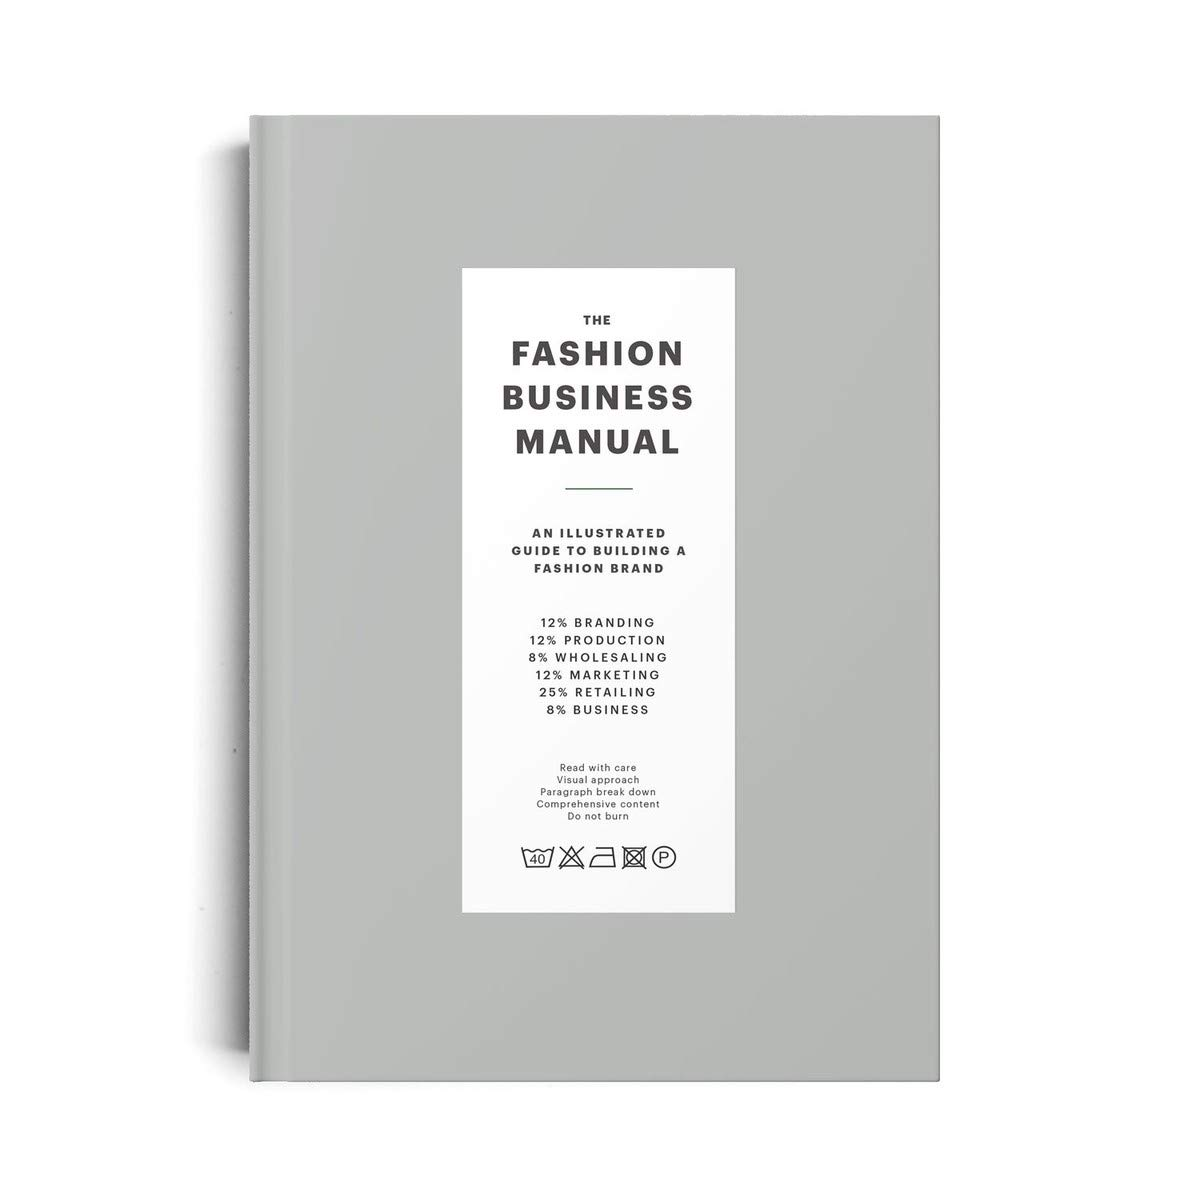 51EpmhQ6S7L - The Fashion Business Manual: An Illustrated Guide to Building a Fashion Brand